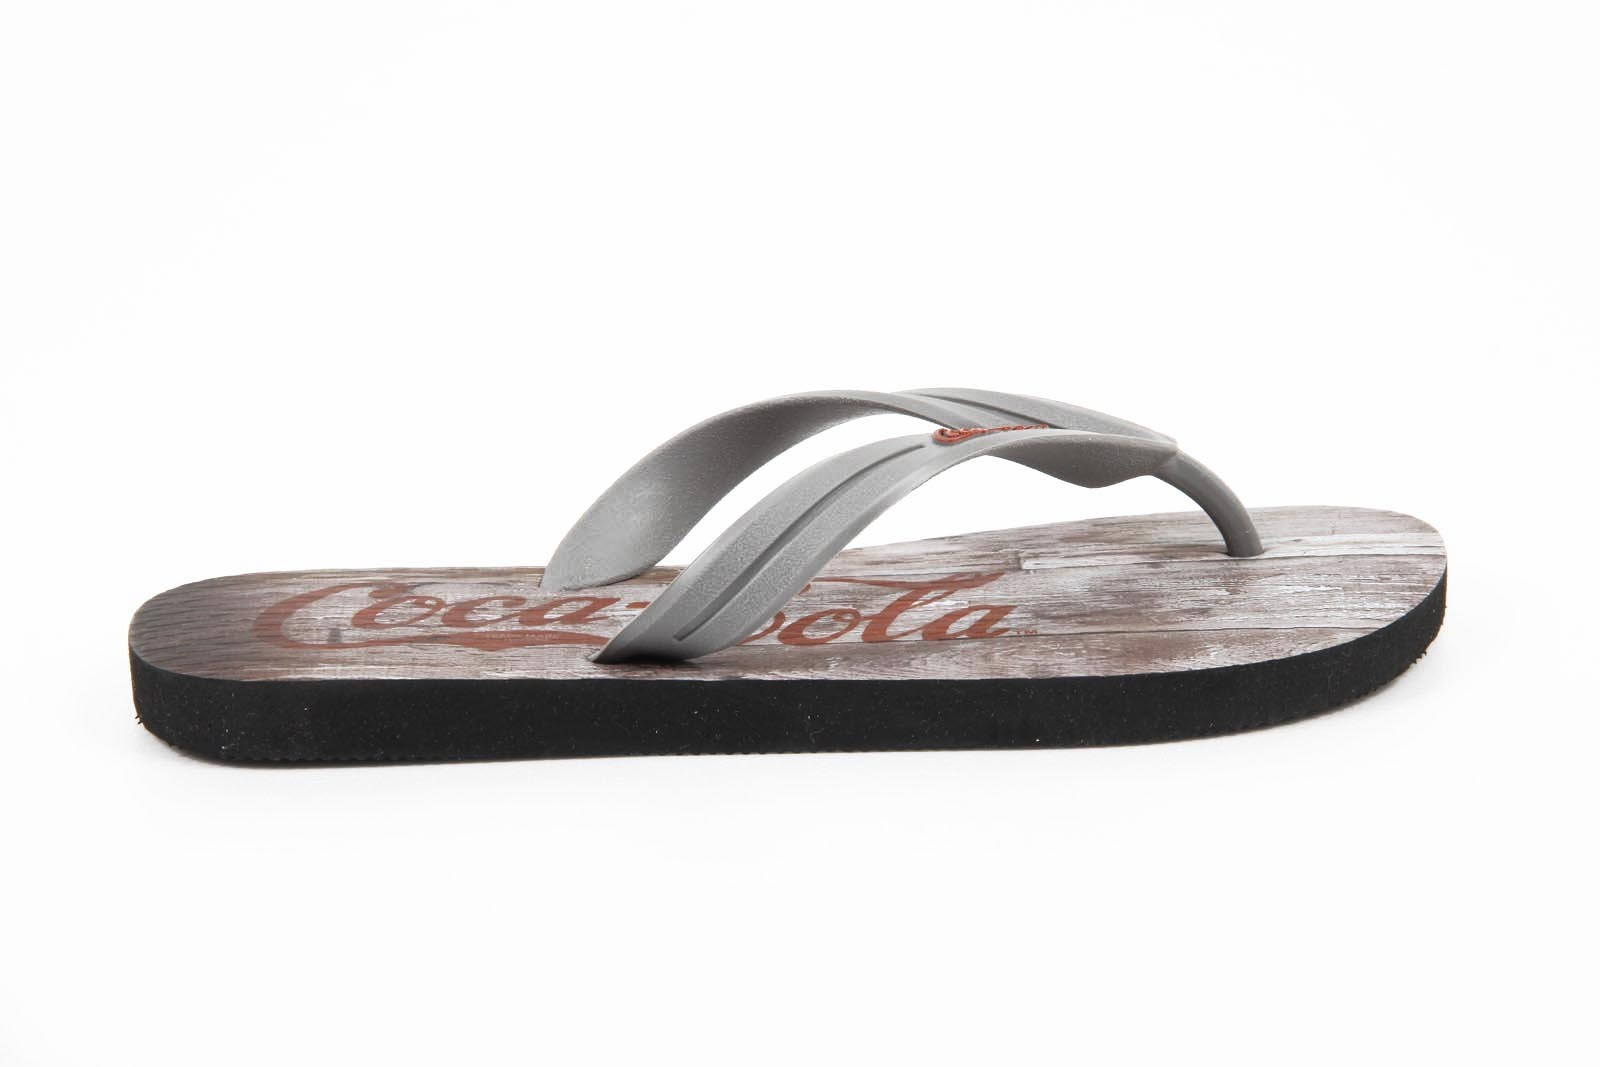 Primary image for Coca Cola mens flip flop CCA0563 WOOD GRAPHITE